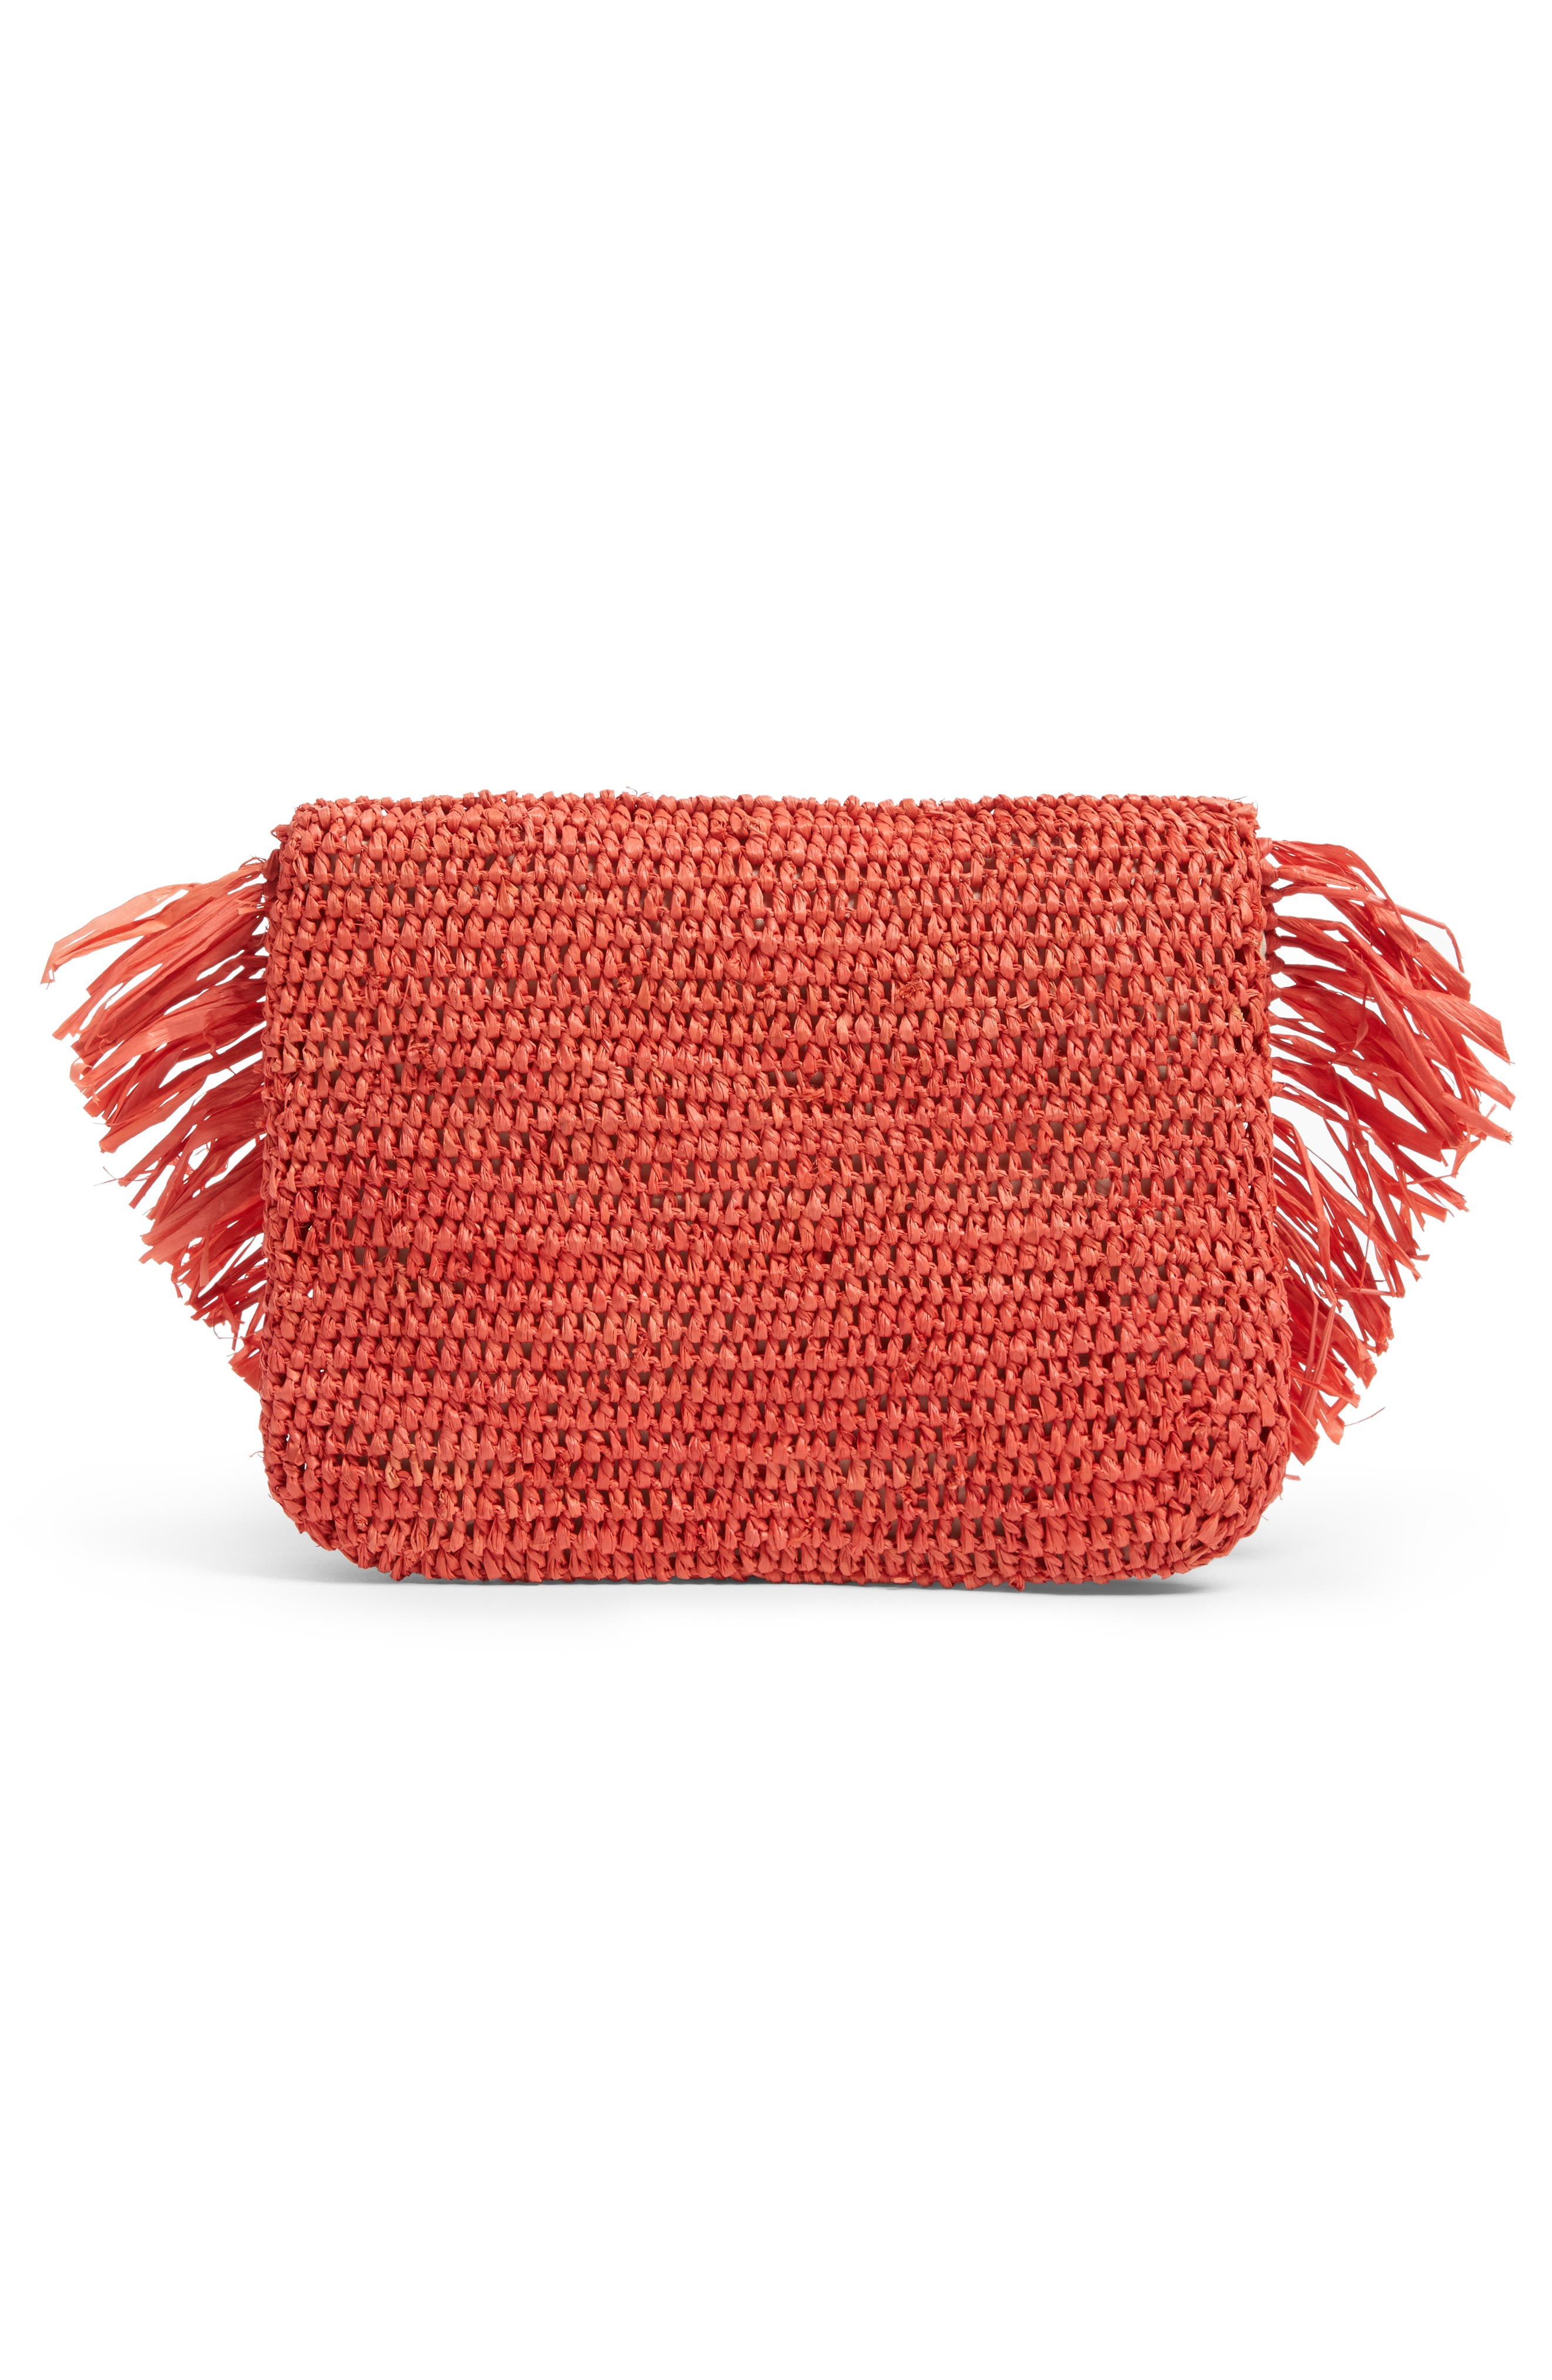 Alternate Image 3  - Mar y Sol Mia Woven Raffia Clutch